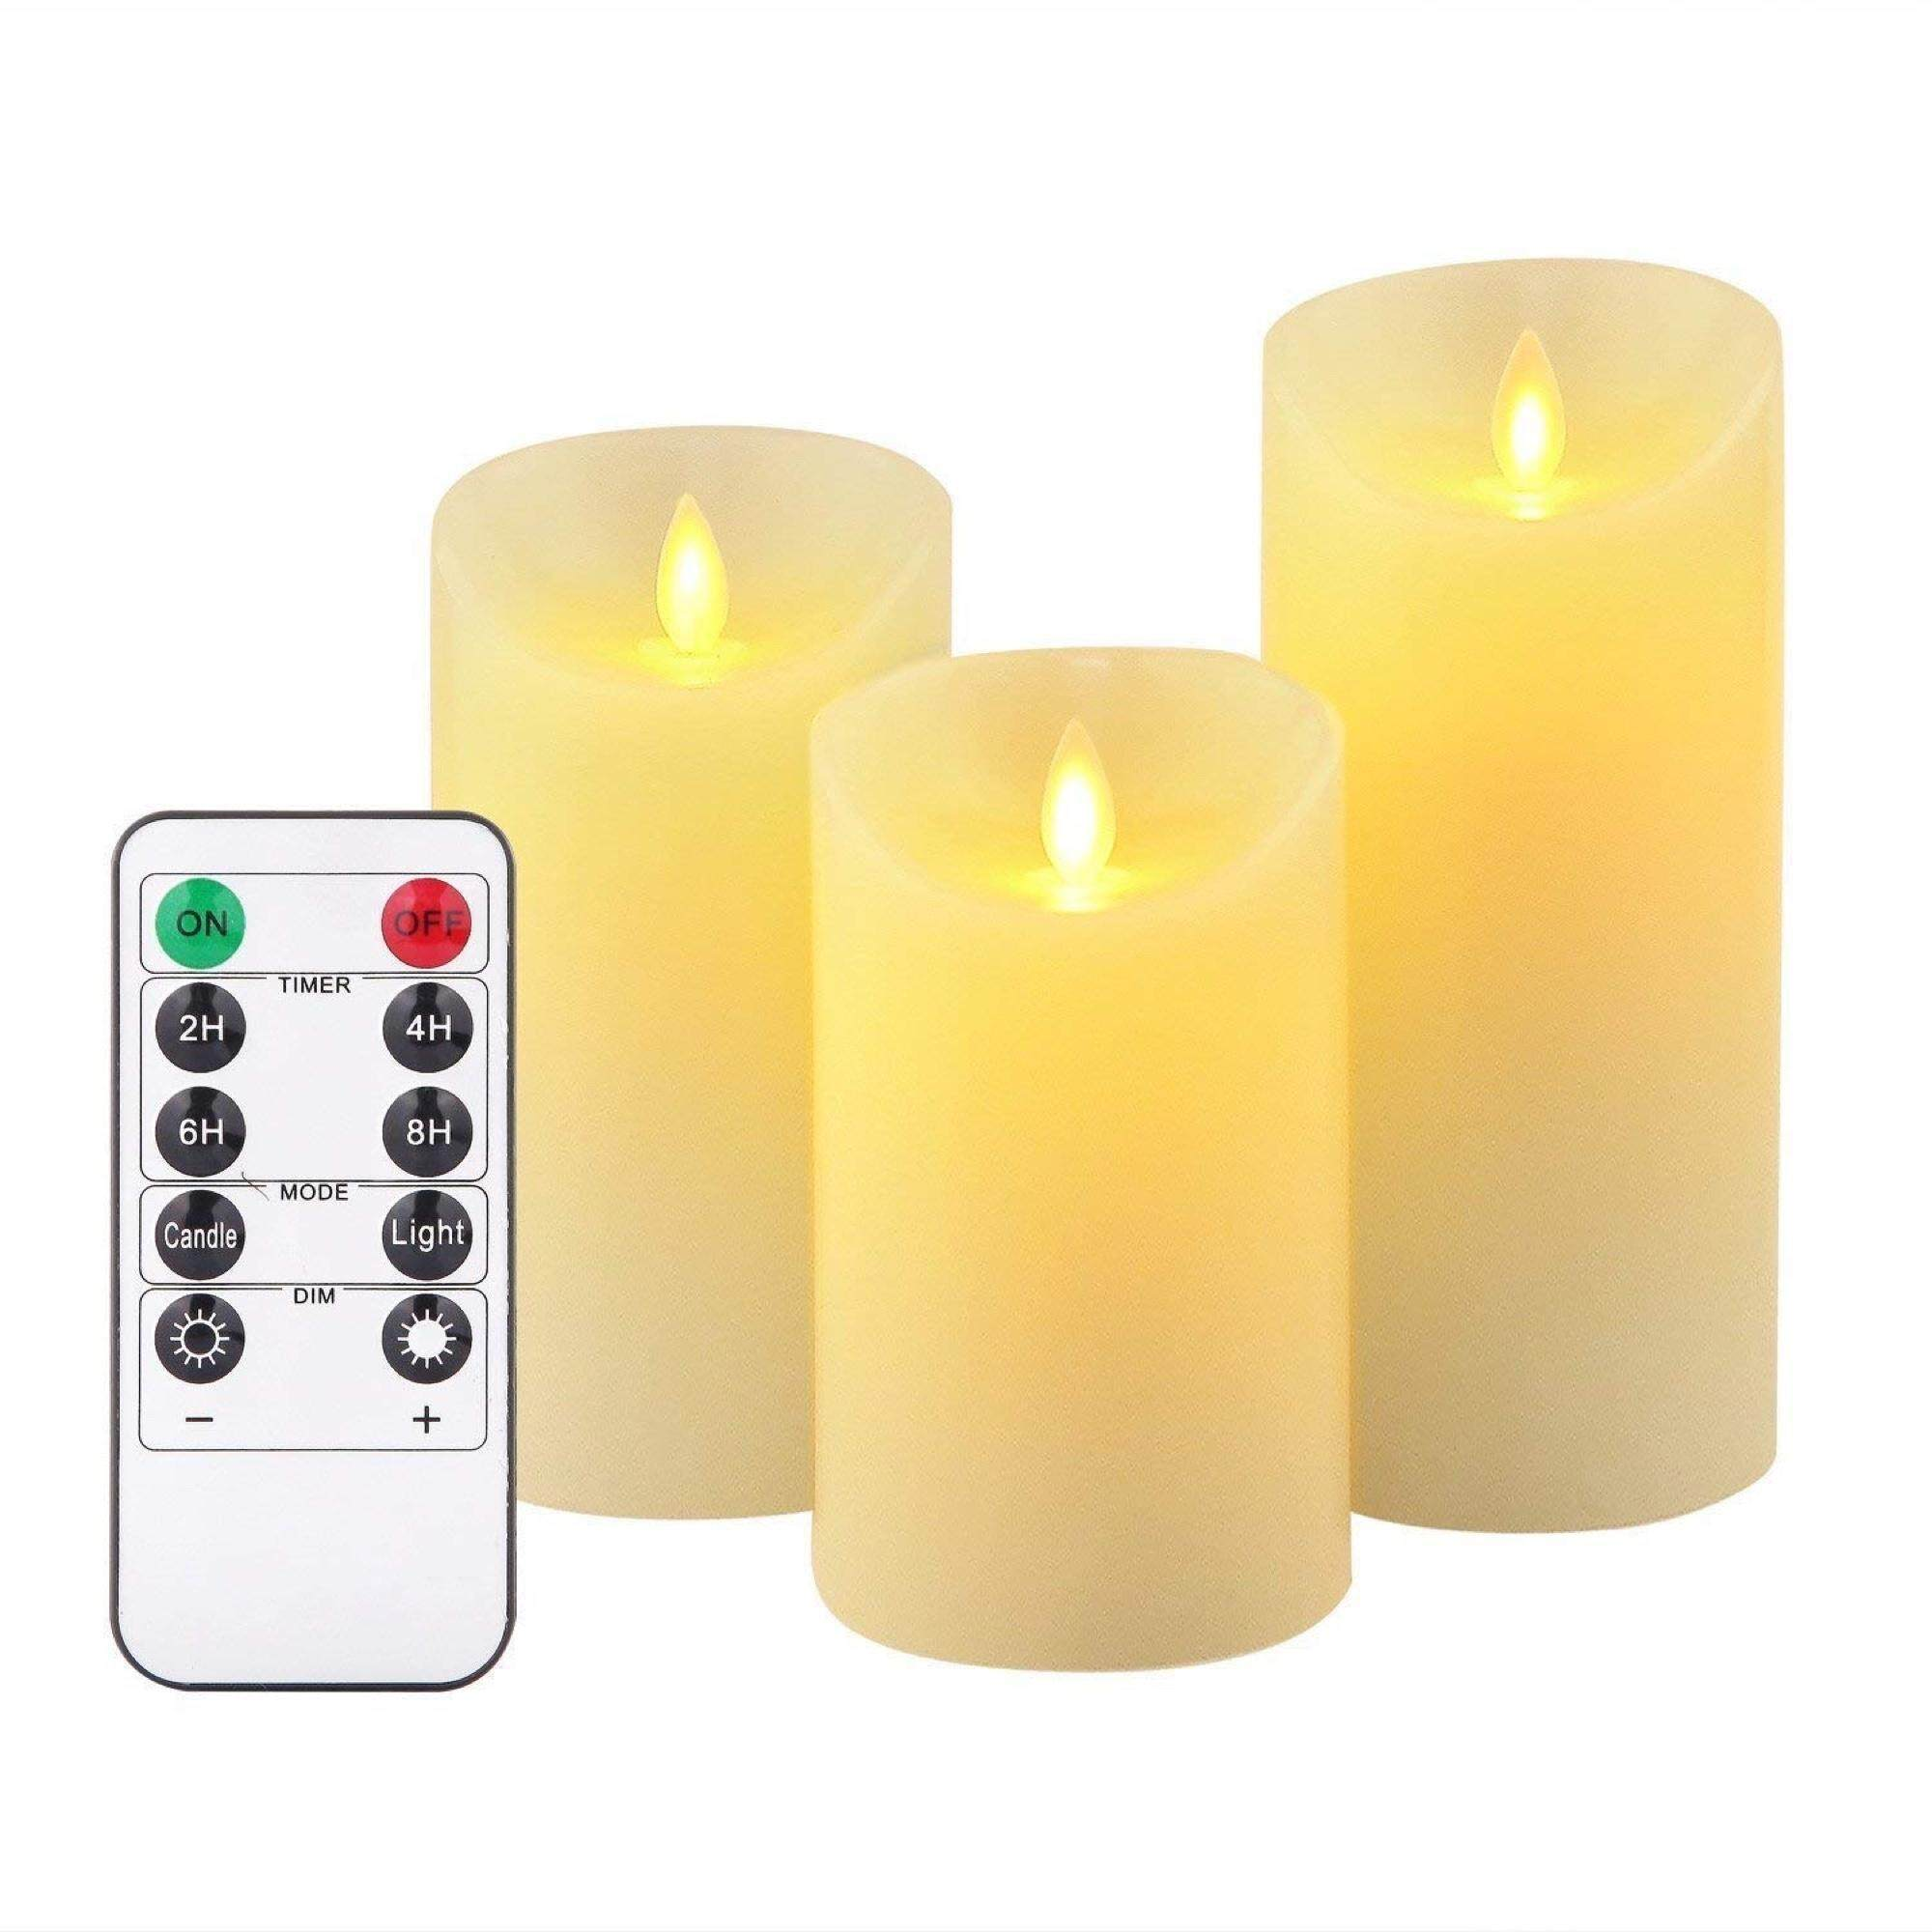 Flameless Candles 8cm (D) x 10cm /12.5cm /15cm (H) Set of 3 Ivory Real Wax Pillars & Moving Flame Wick LED Candles and 10-Key Remote Control with Timer Function, 300+ Hours